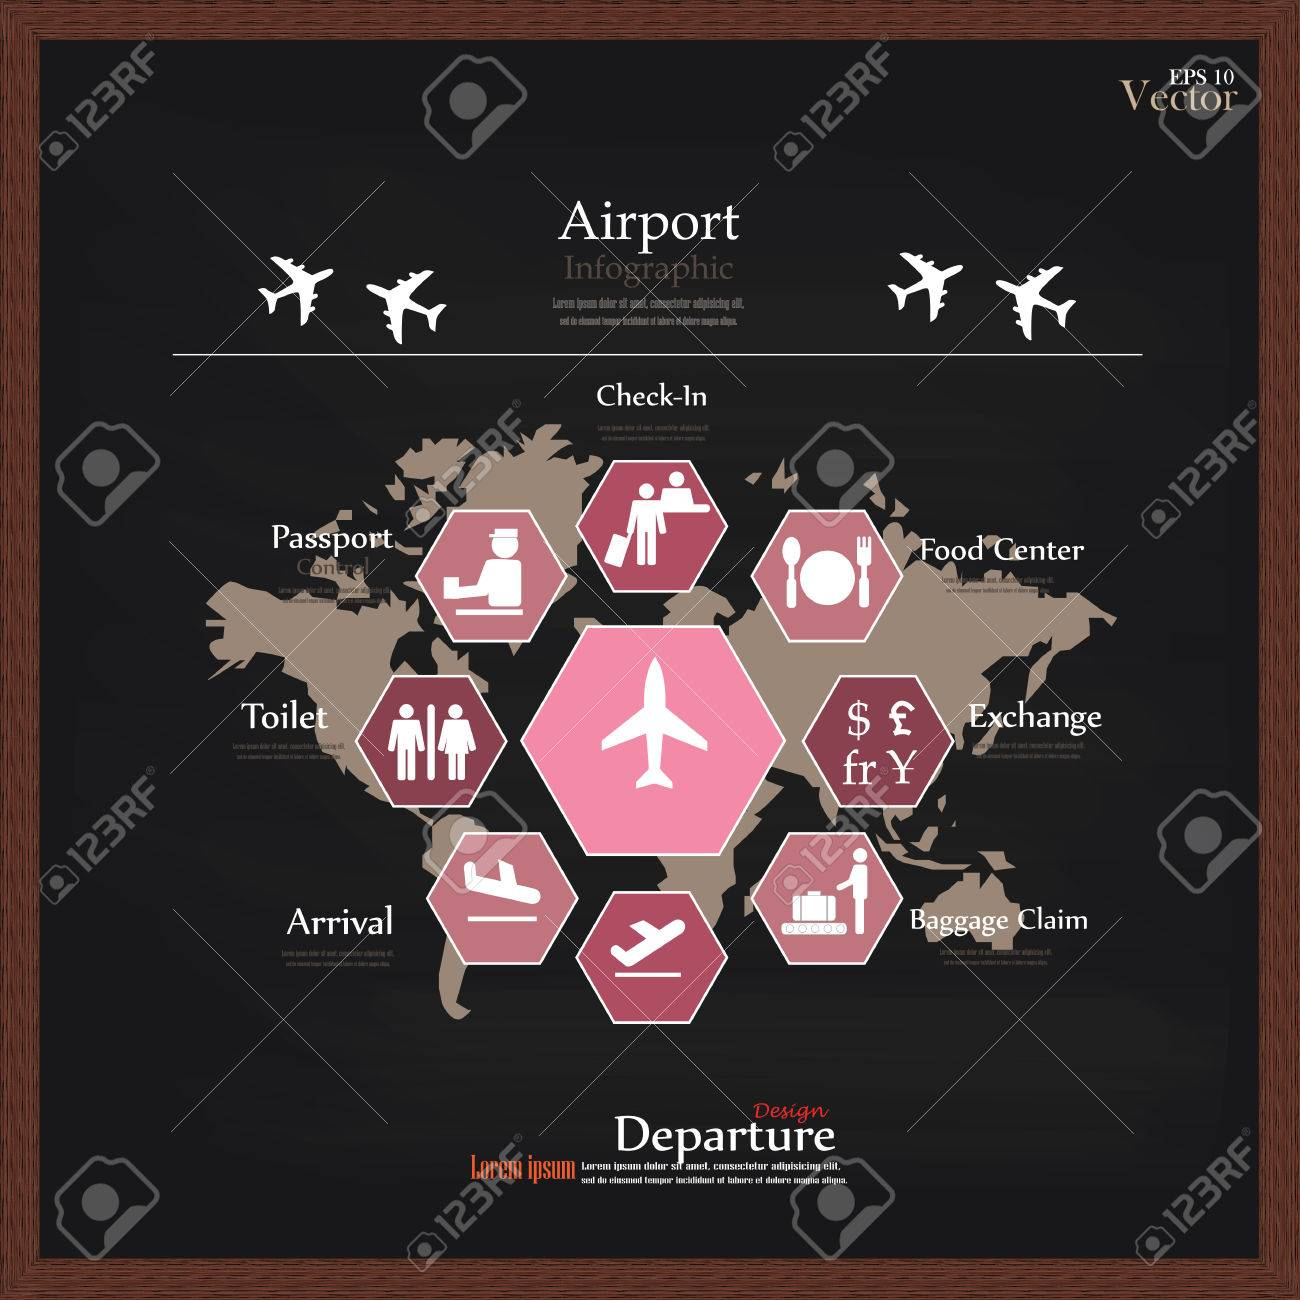 Airport business infographic presentation template concept design airport business infographic presentation template concept design on world map and airport service iconsrport gumiabroncs Gallery